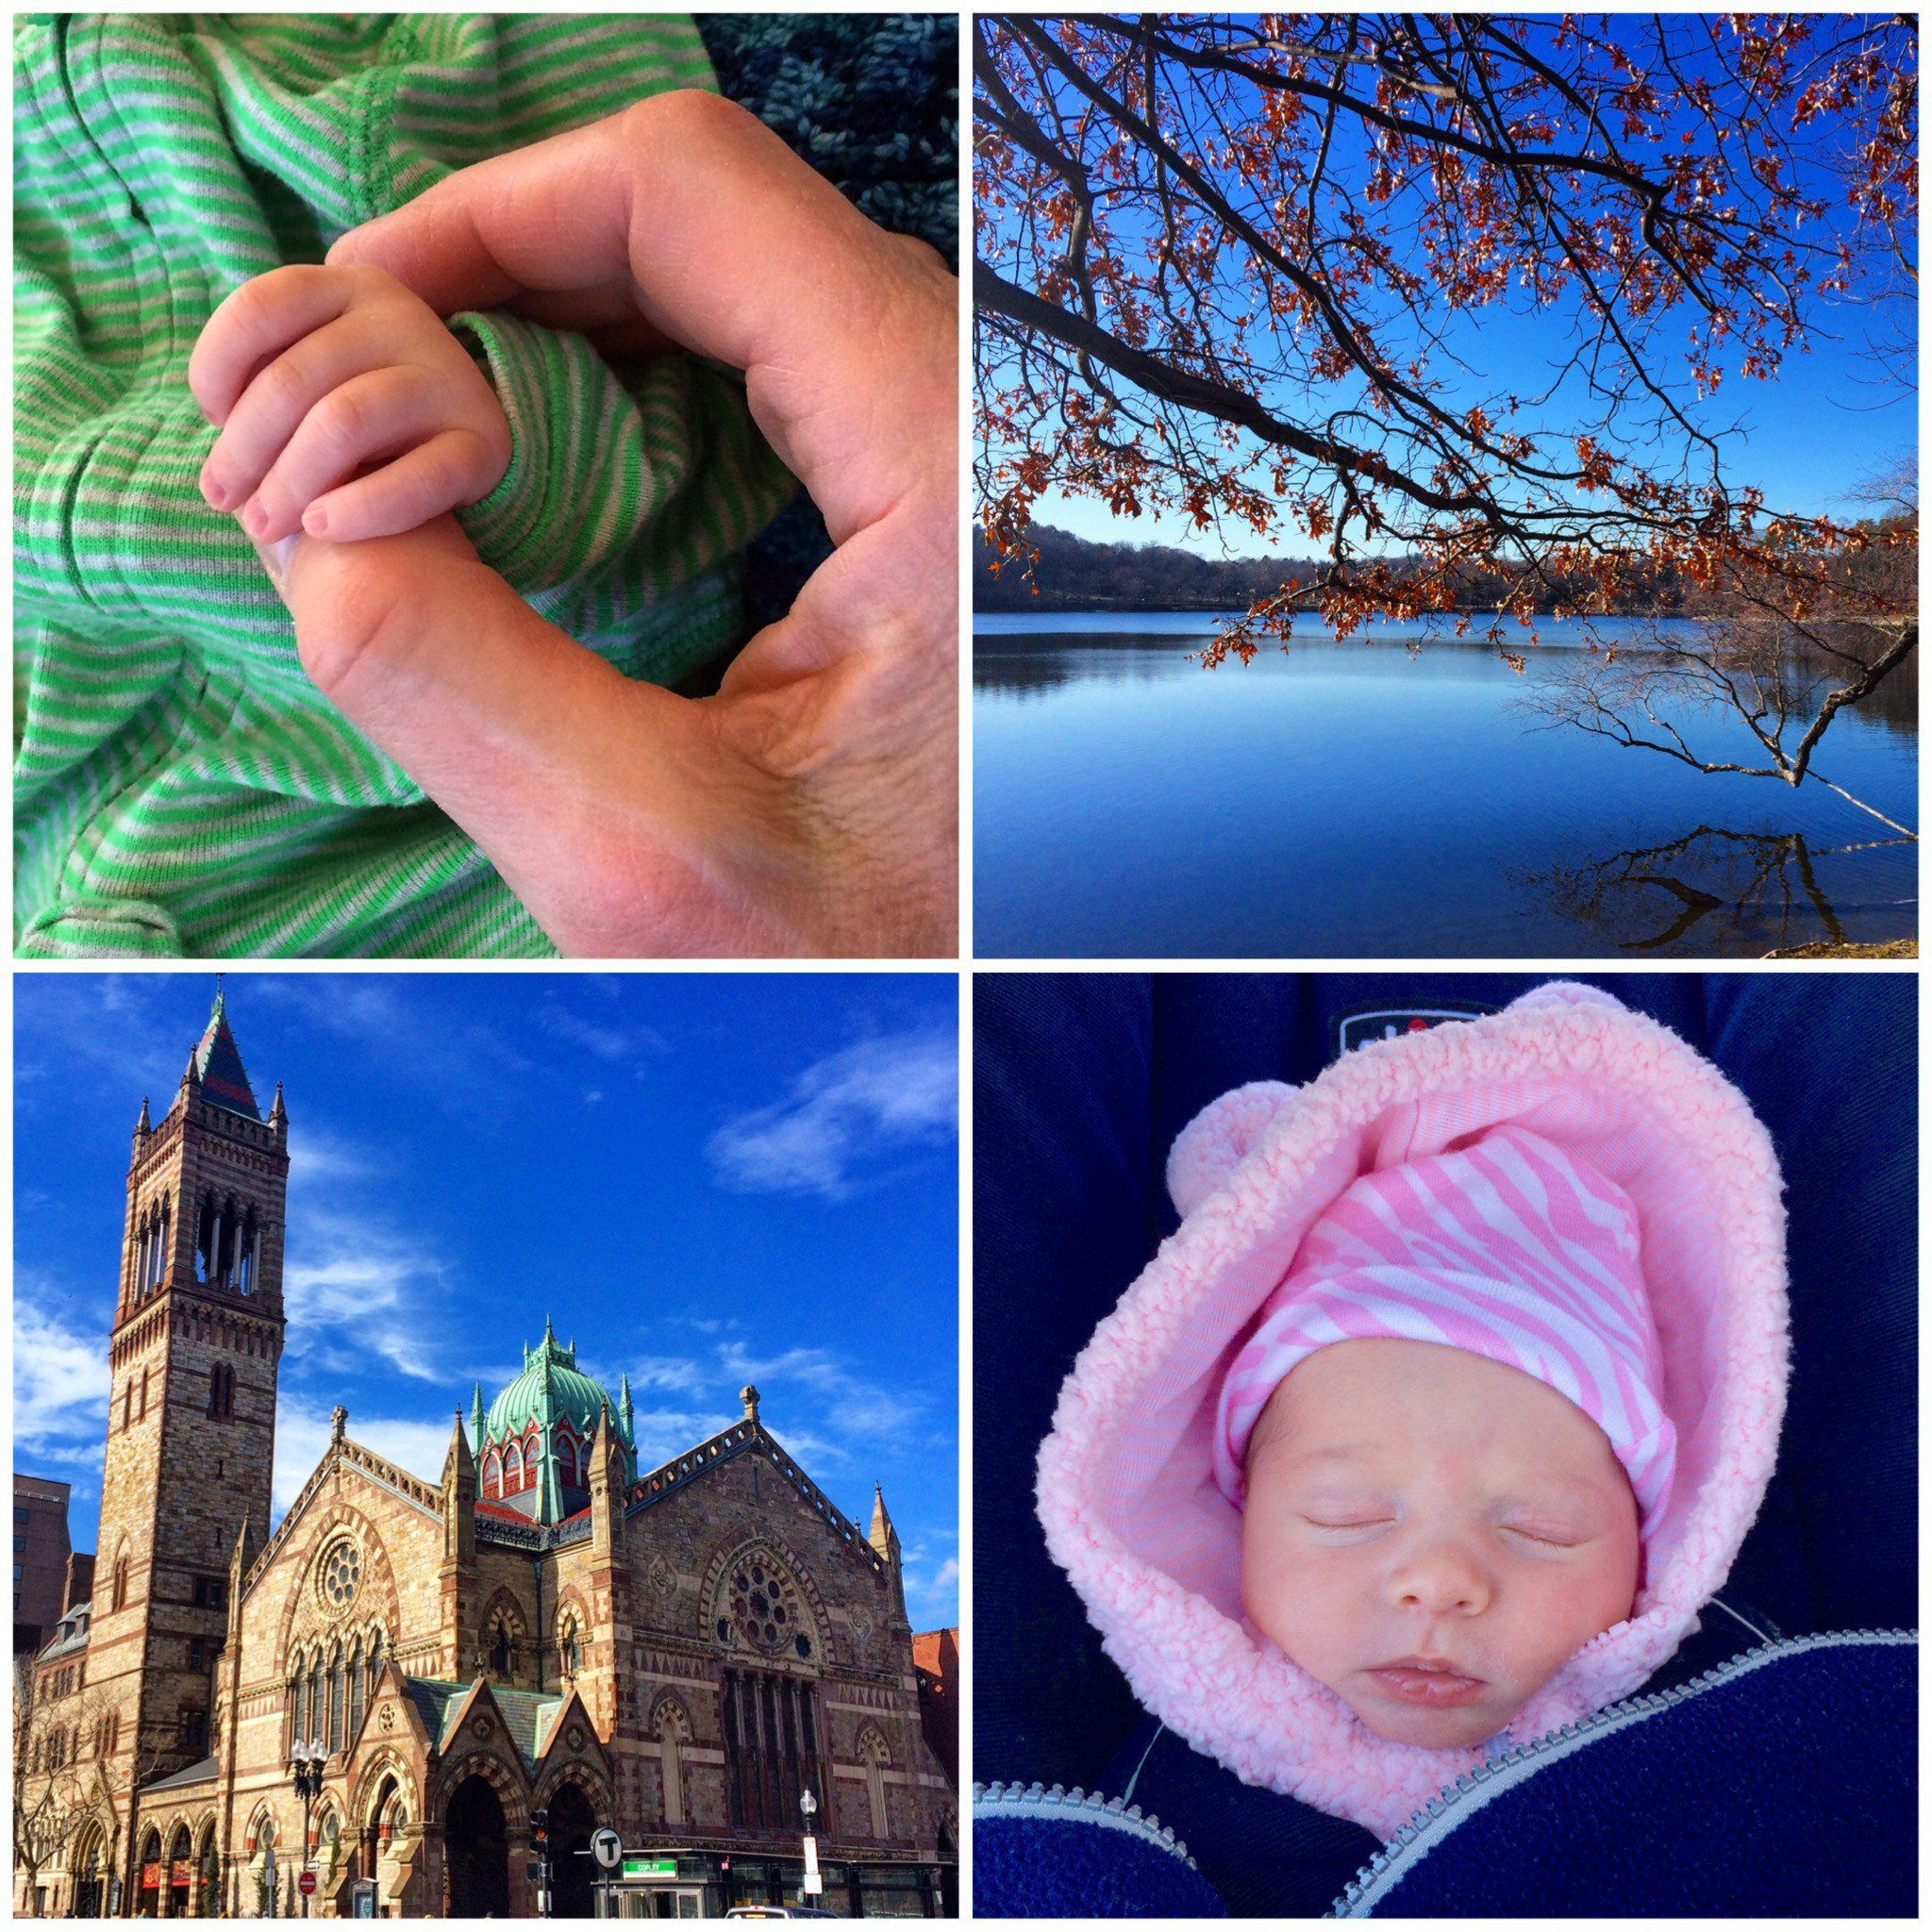 A collage from a day spent walking Boston with baby... and nursing on park benches!